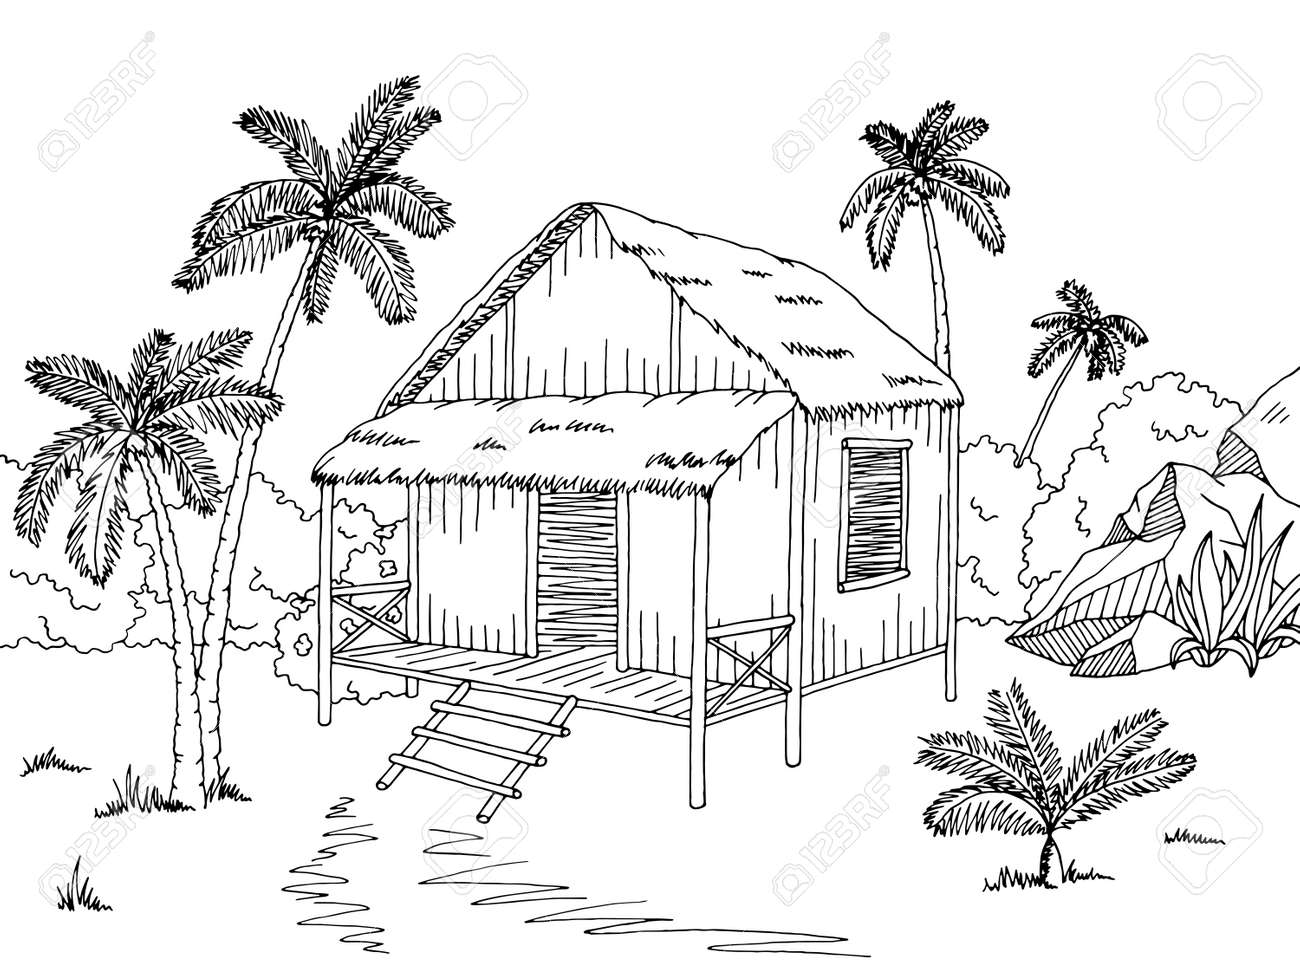 Jungle Hut House Graphic Black White Sketch Illustration Vector Stock